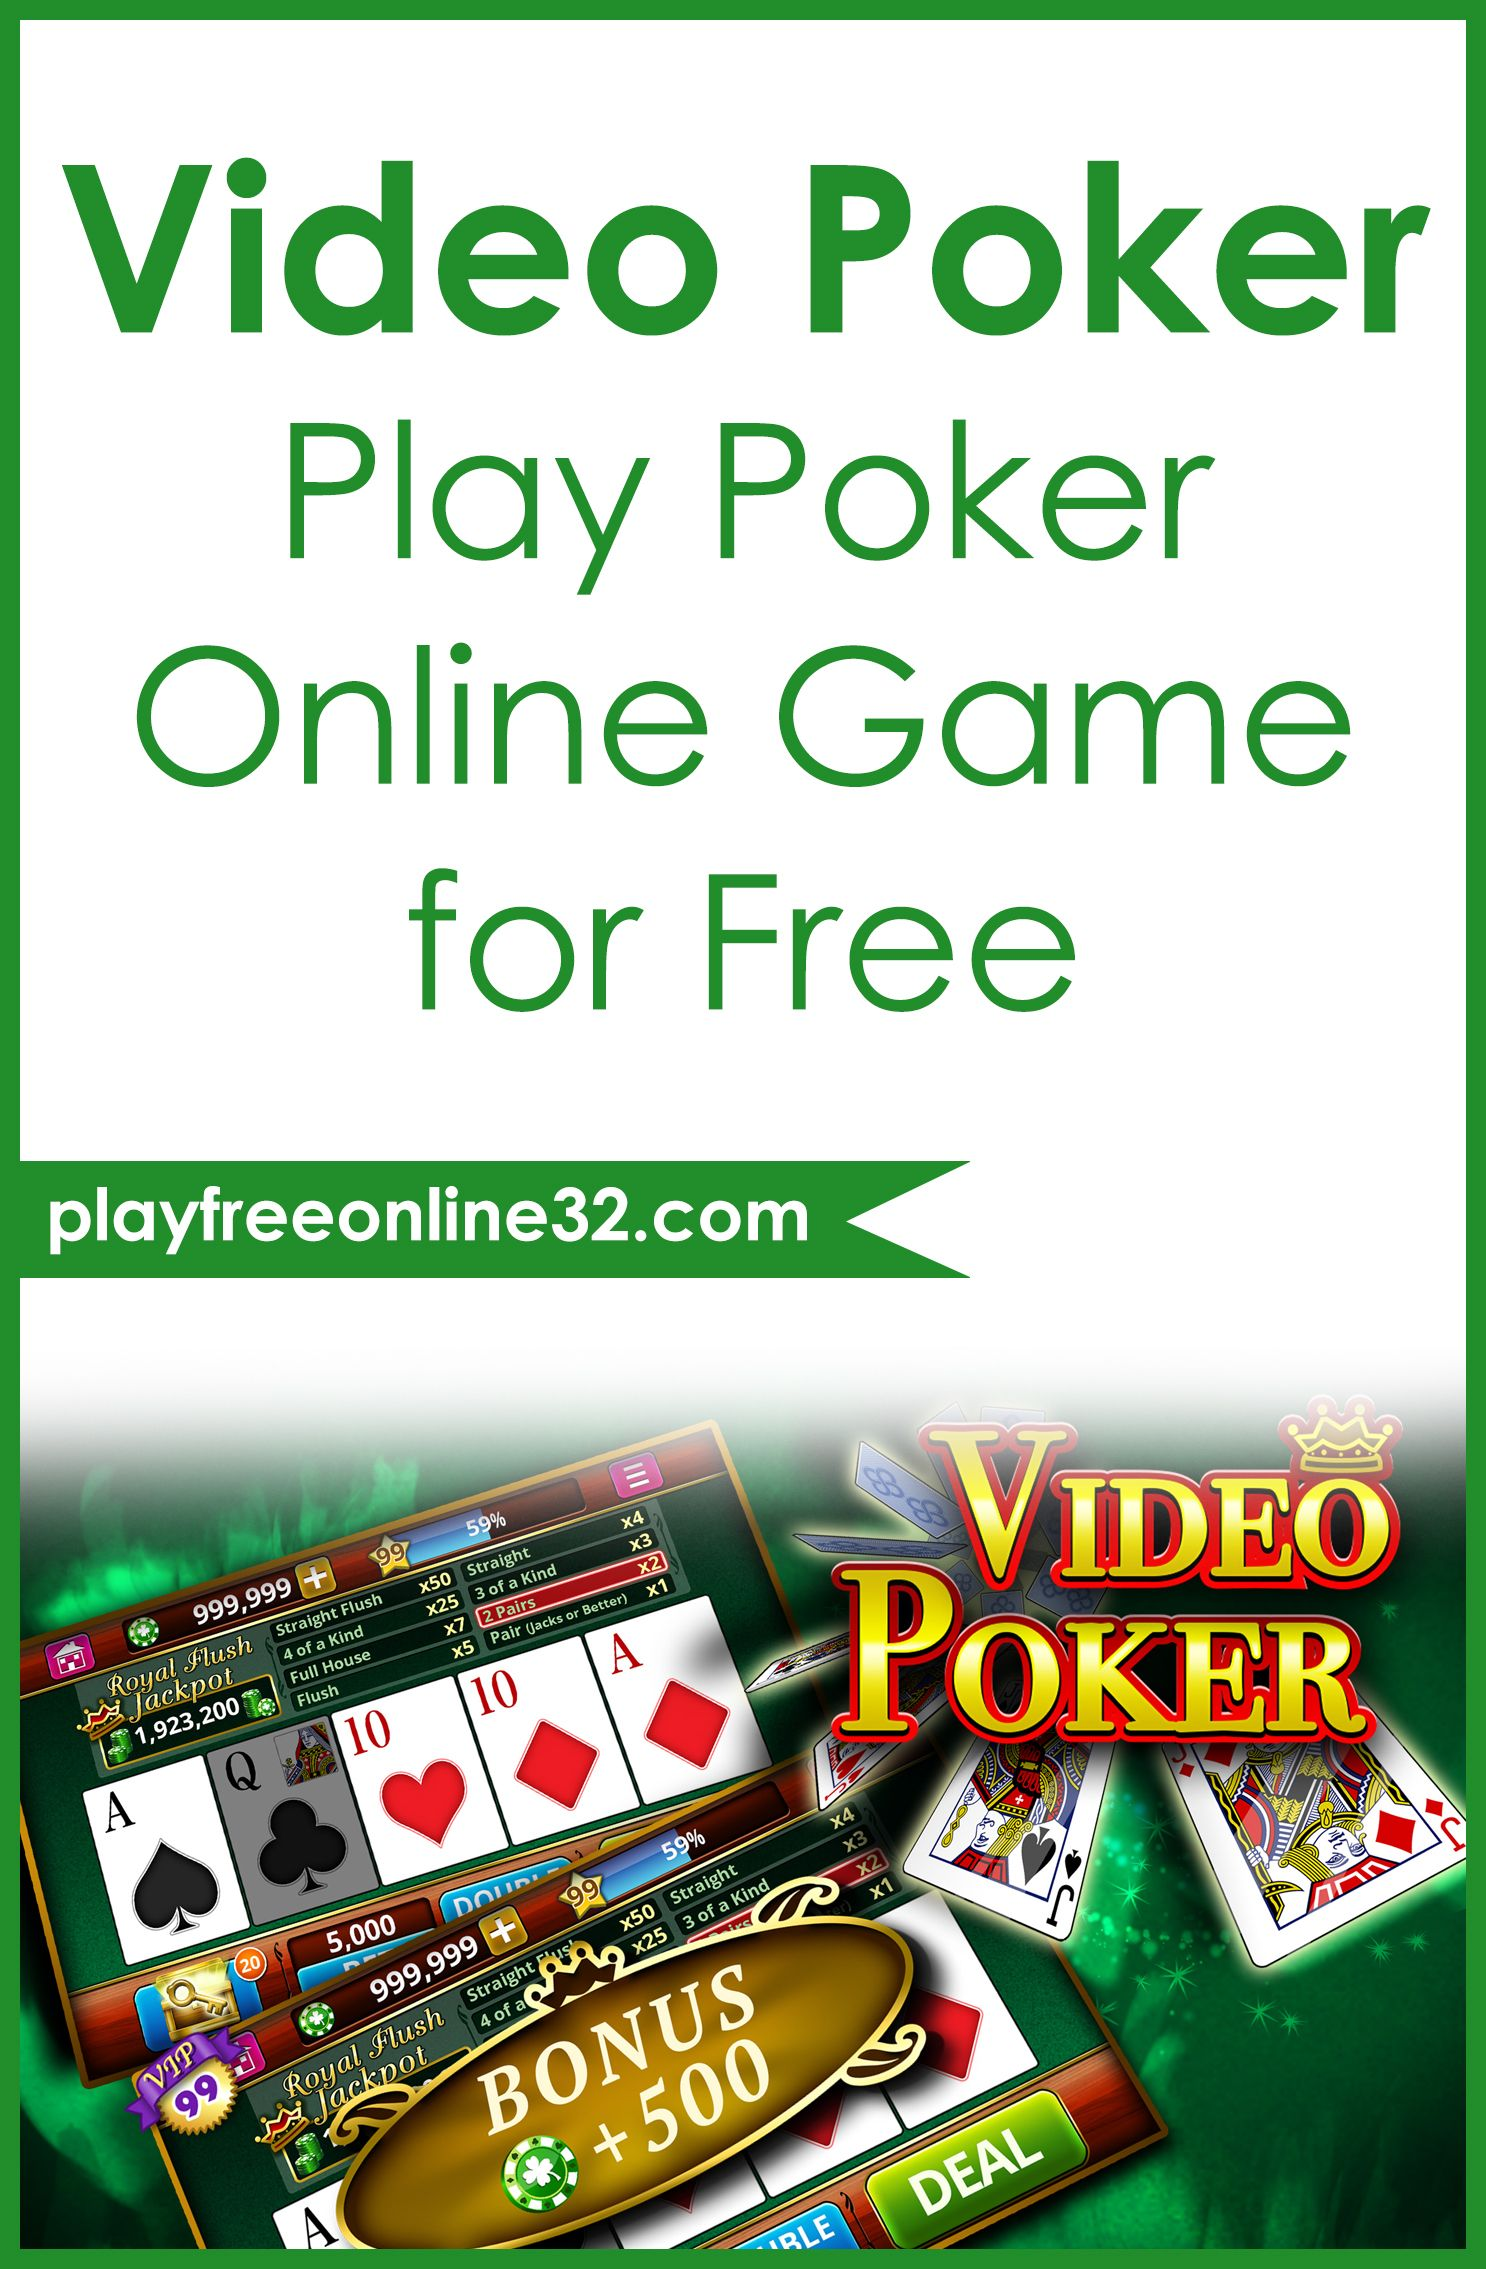 Video Poker • Play Poker Online Game for Free Free